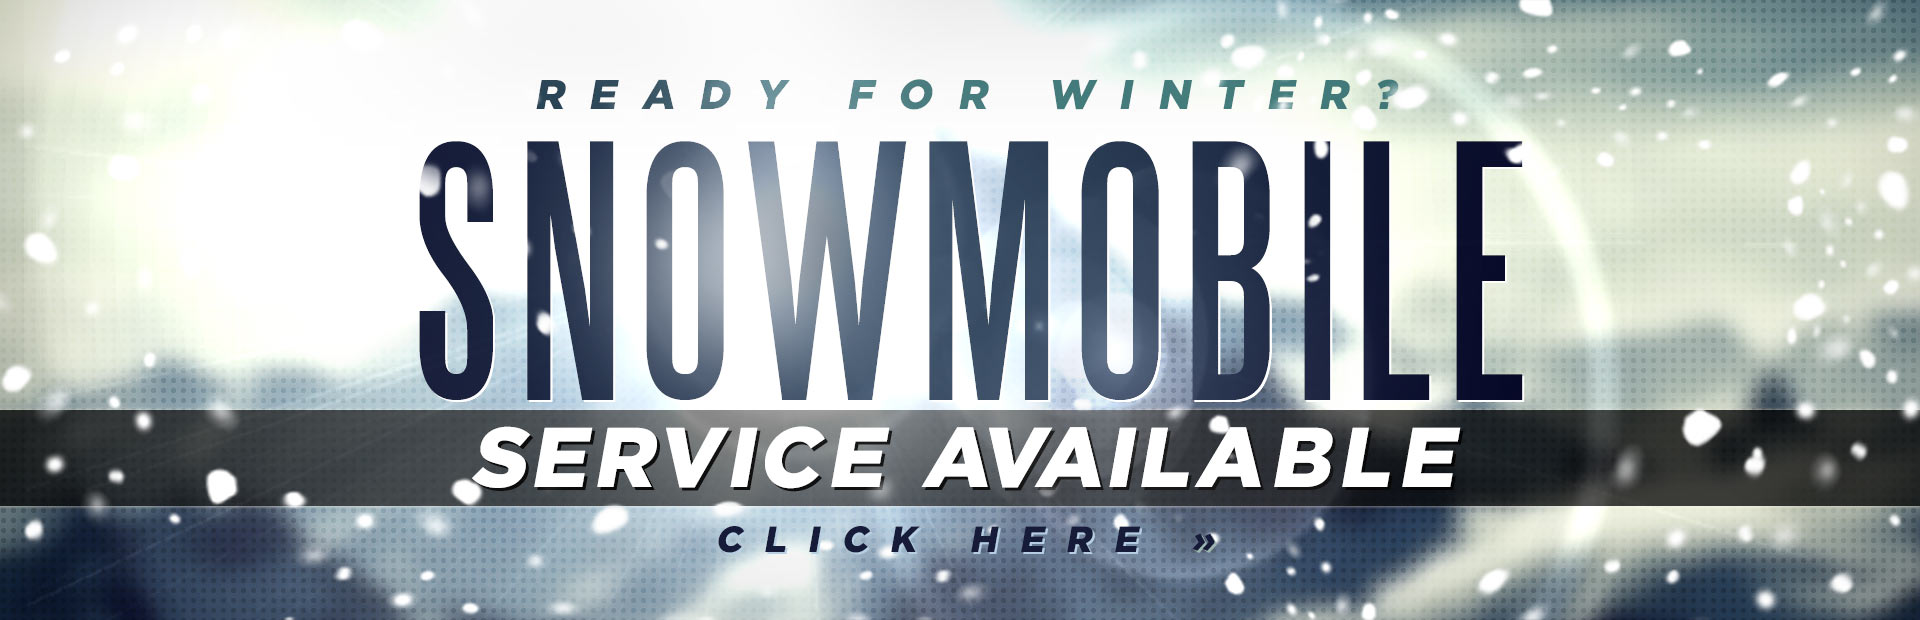 Snowmobile Service Available: Click here for details.